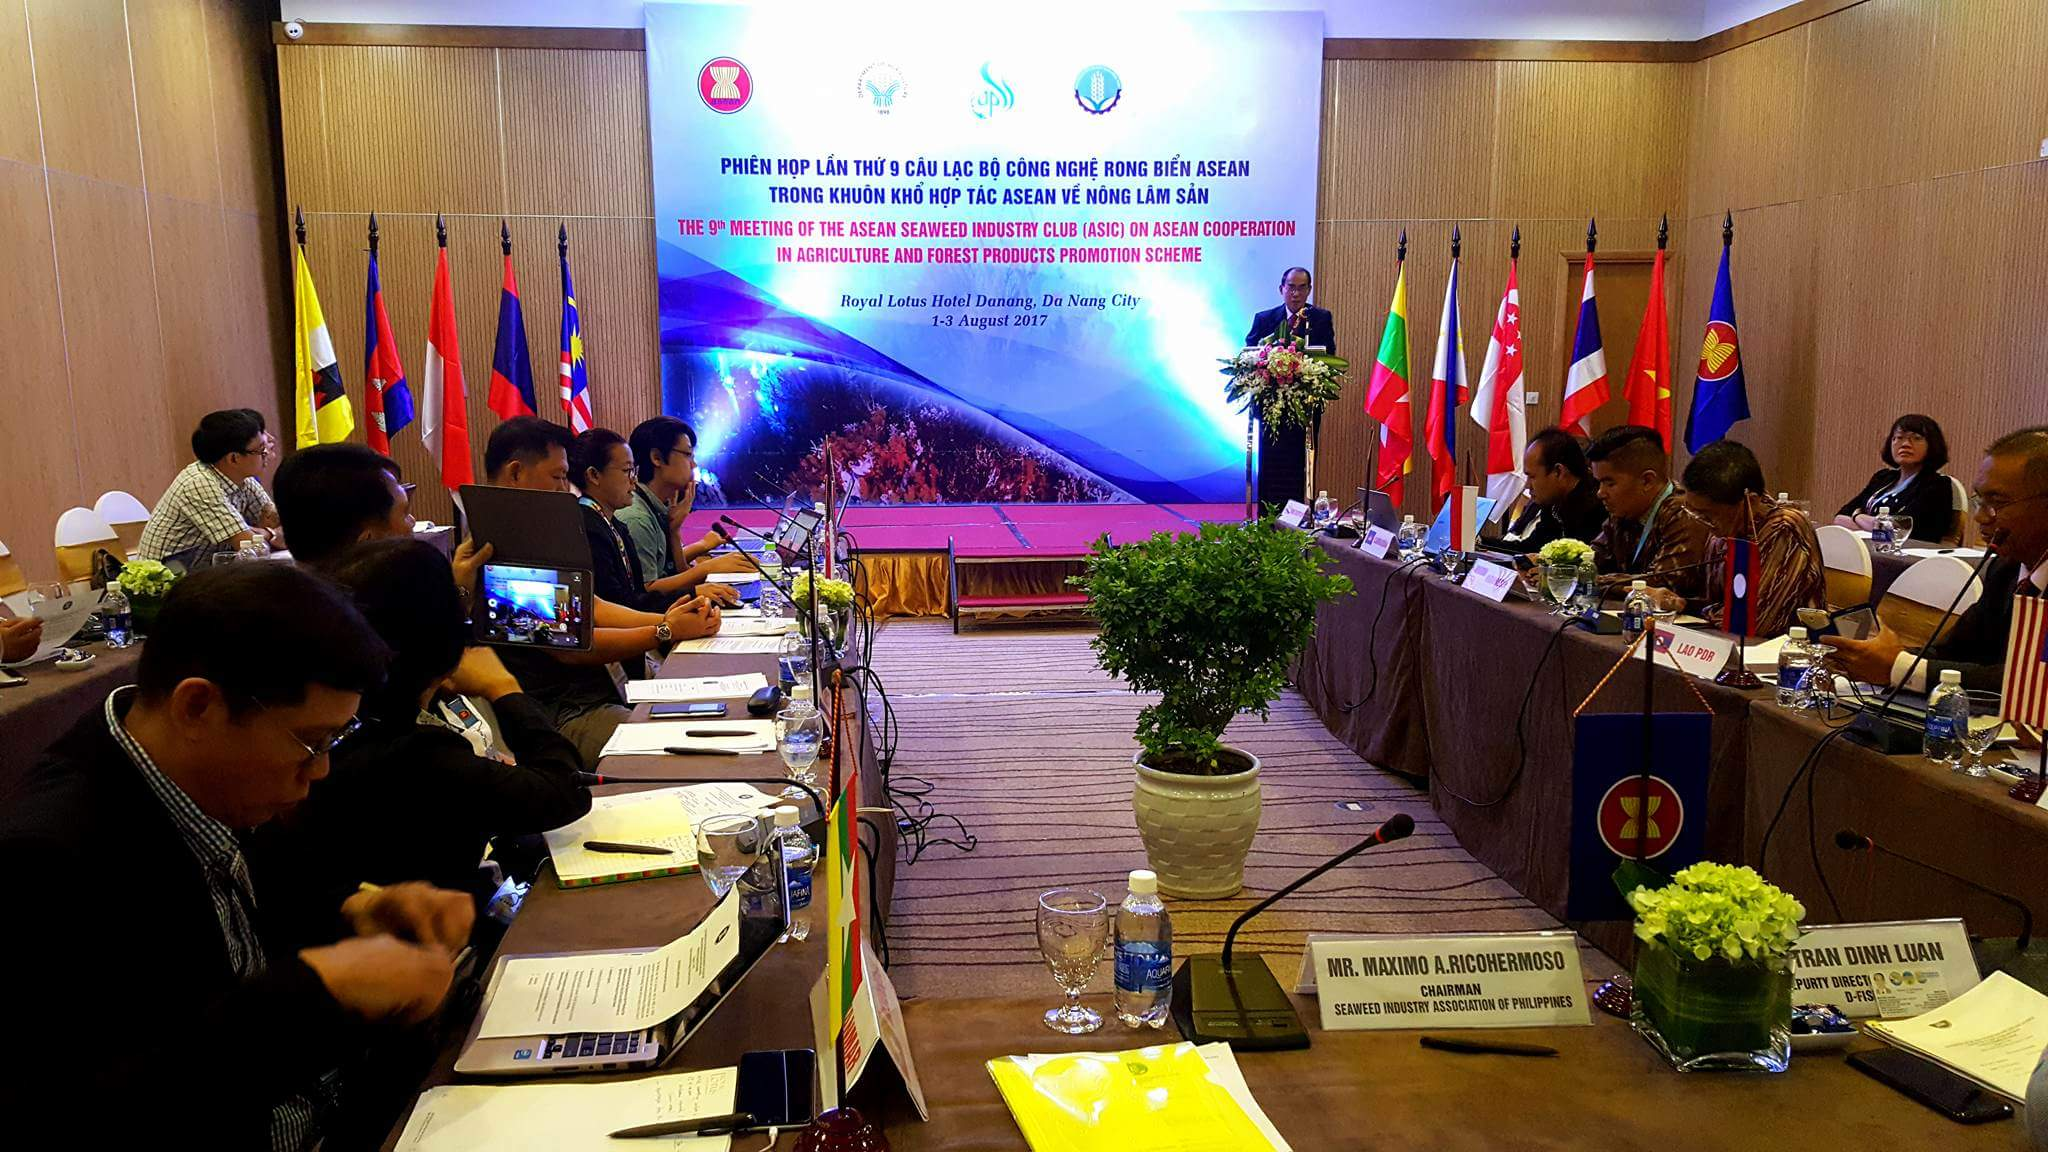 The 9th Meeting of the ASEAN Seaweed Industry Club (ASIC) on ASEAN Cooperation in Agriculture and Forestry product promotion scheme